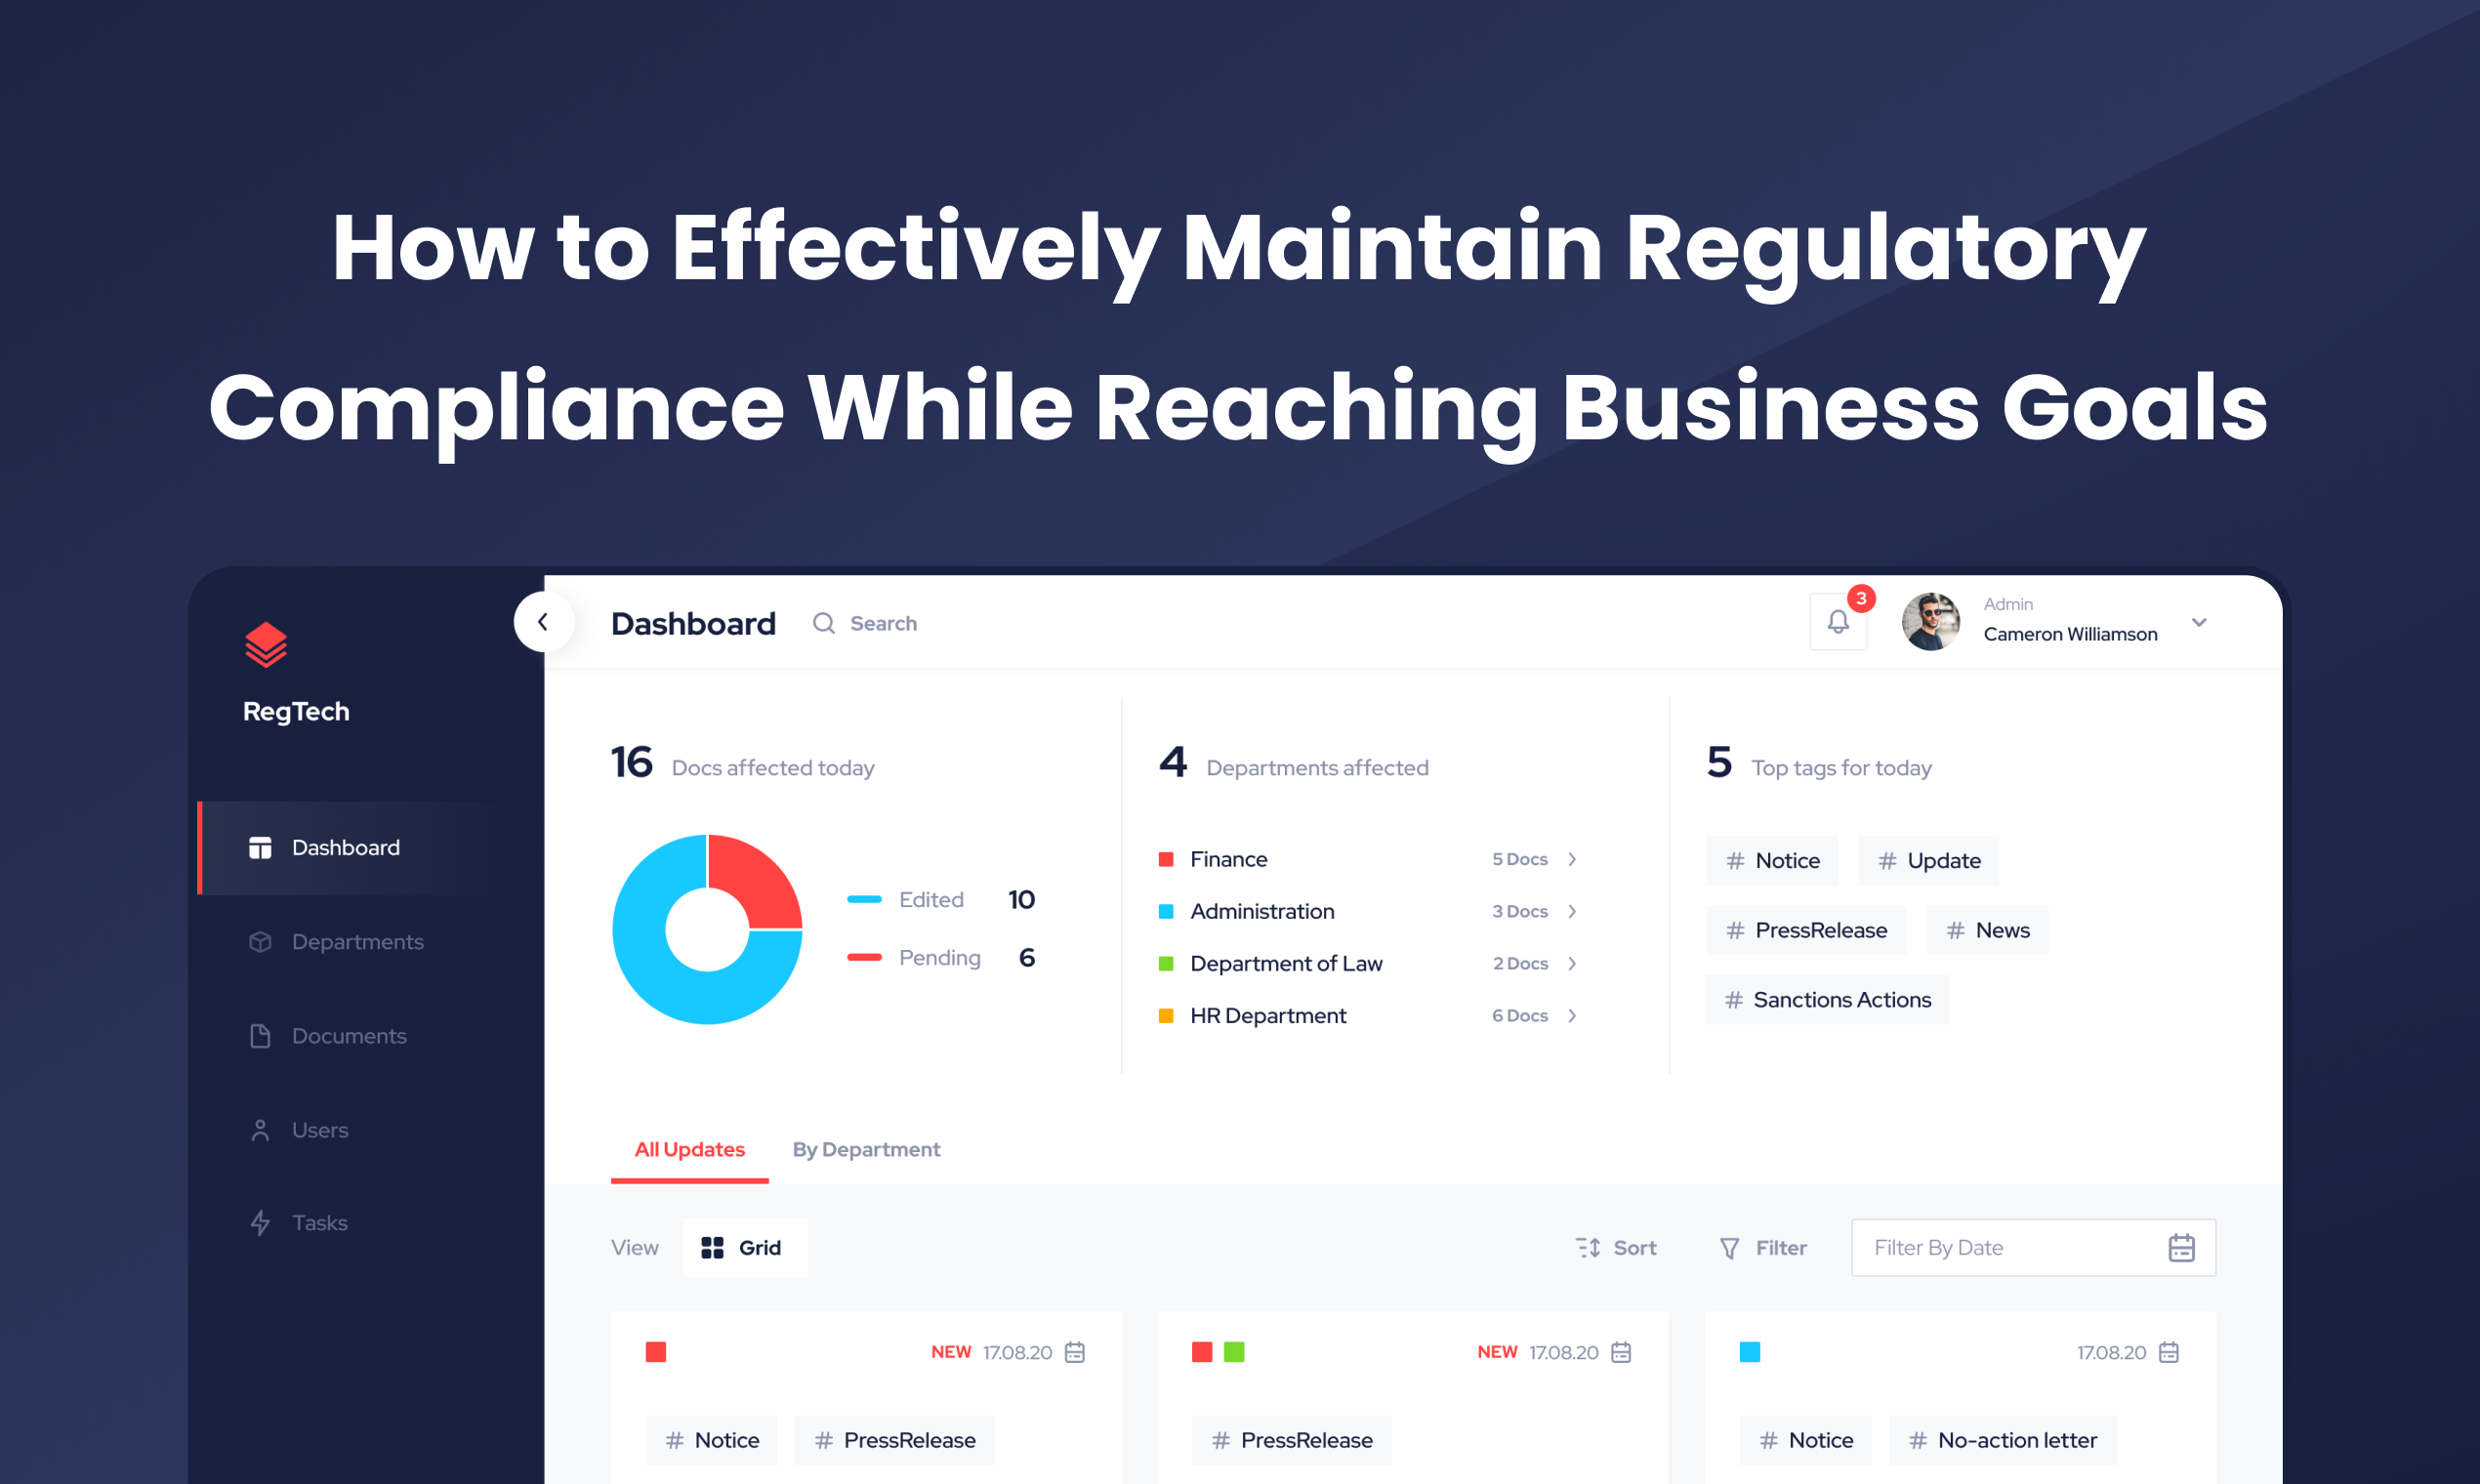 How to effectively comply with regulatory requirements